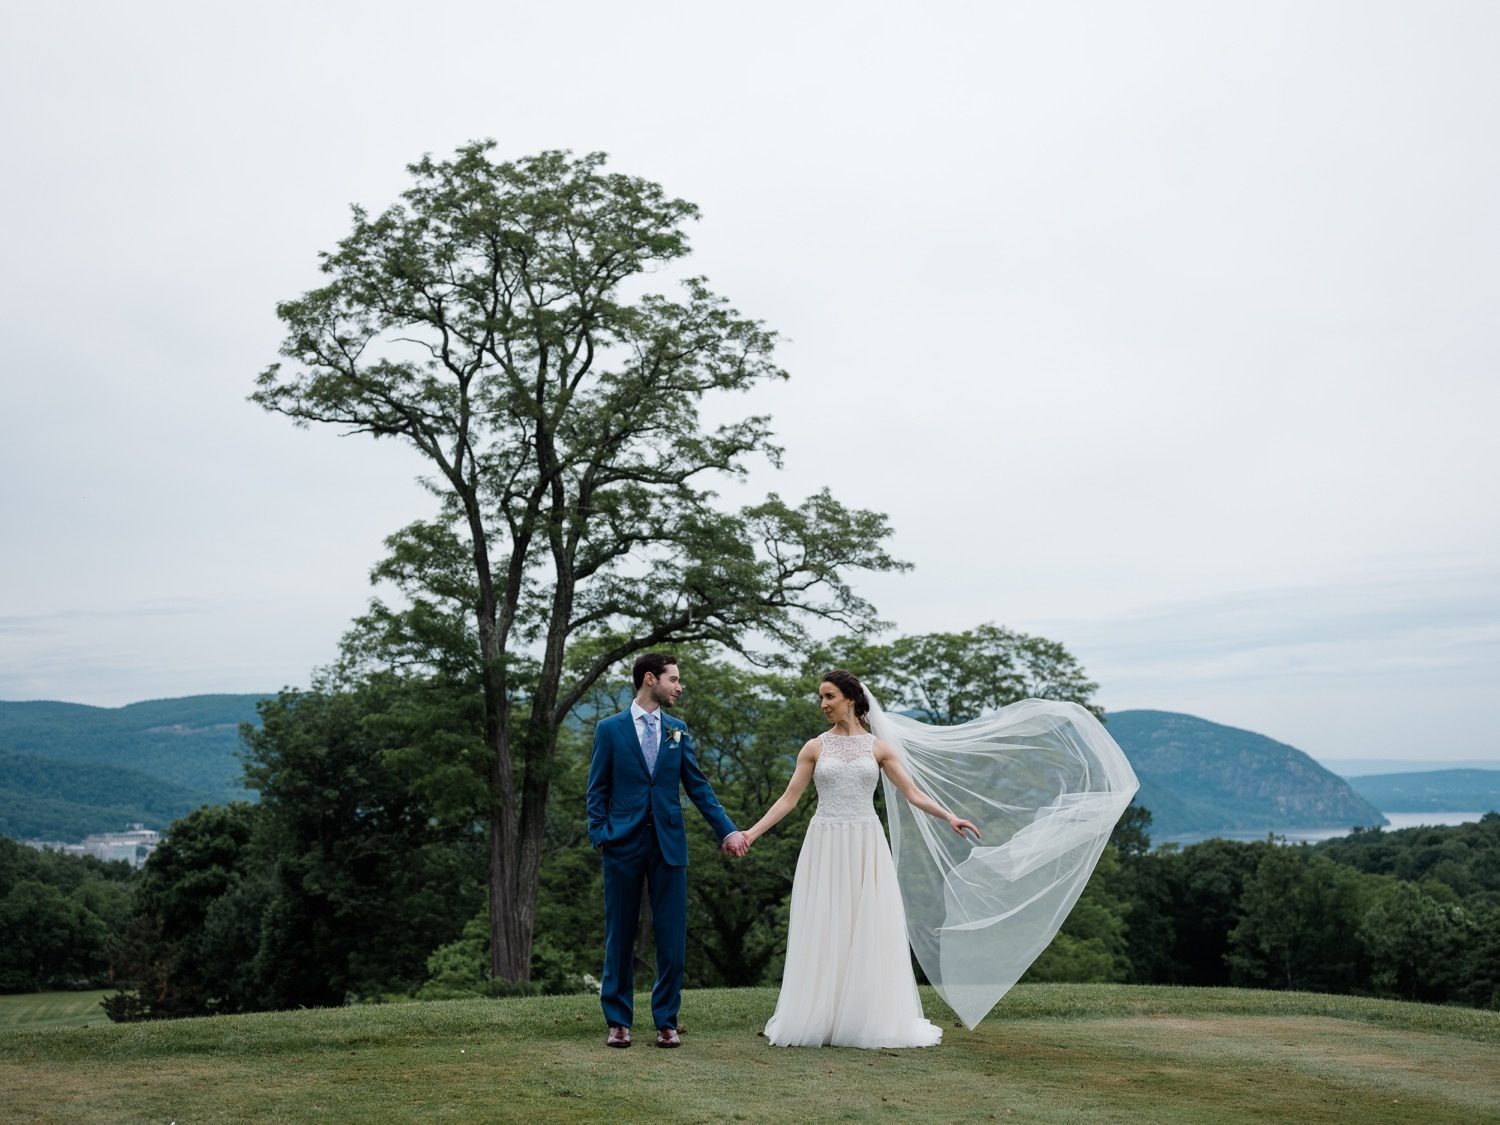 The Garrison Wedding, The Garrison venue, Hudson Valley wedding, hudson valley wedding photographer, catskills wedding photographer, the garrison wedding photos, best catskills wedding photographer,